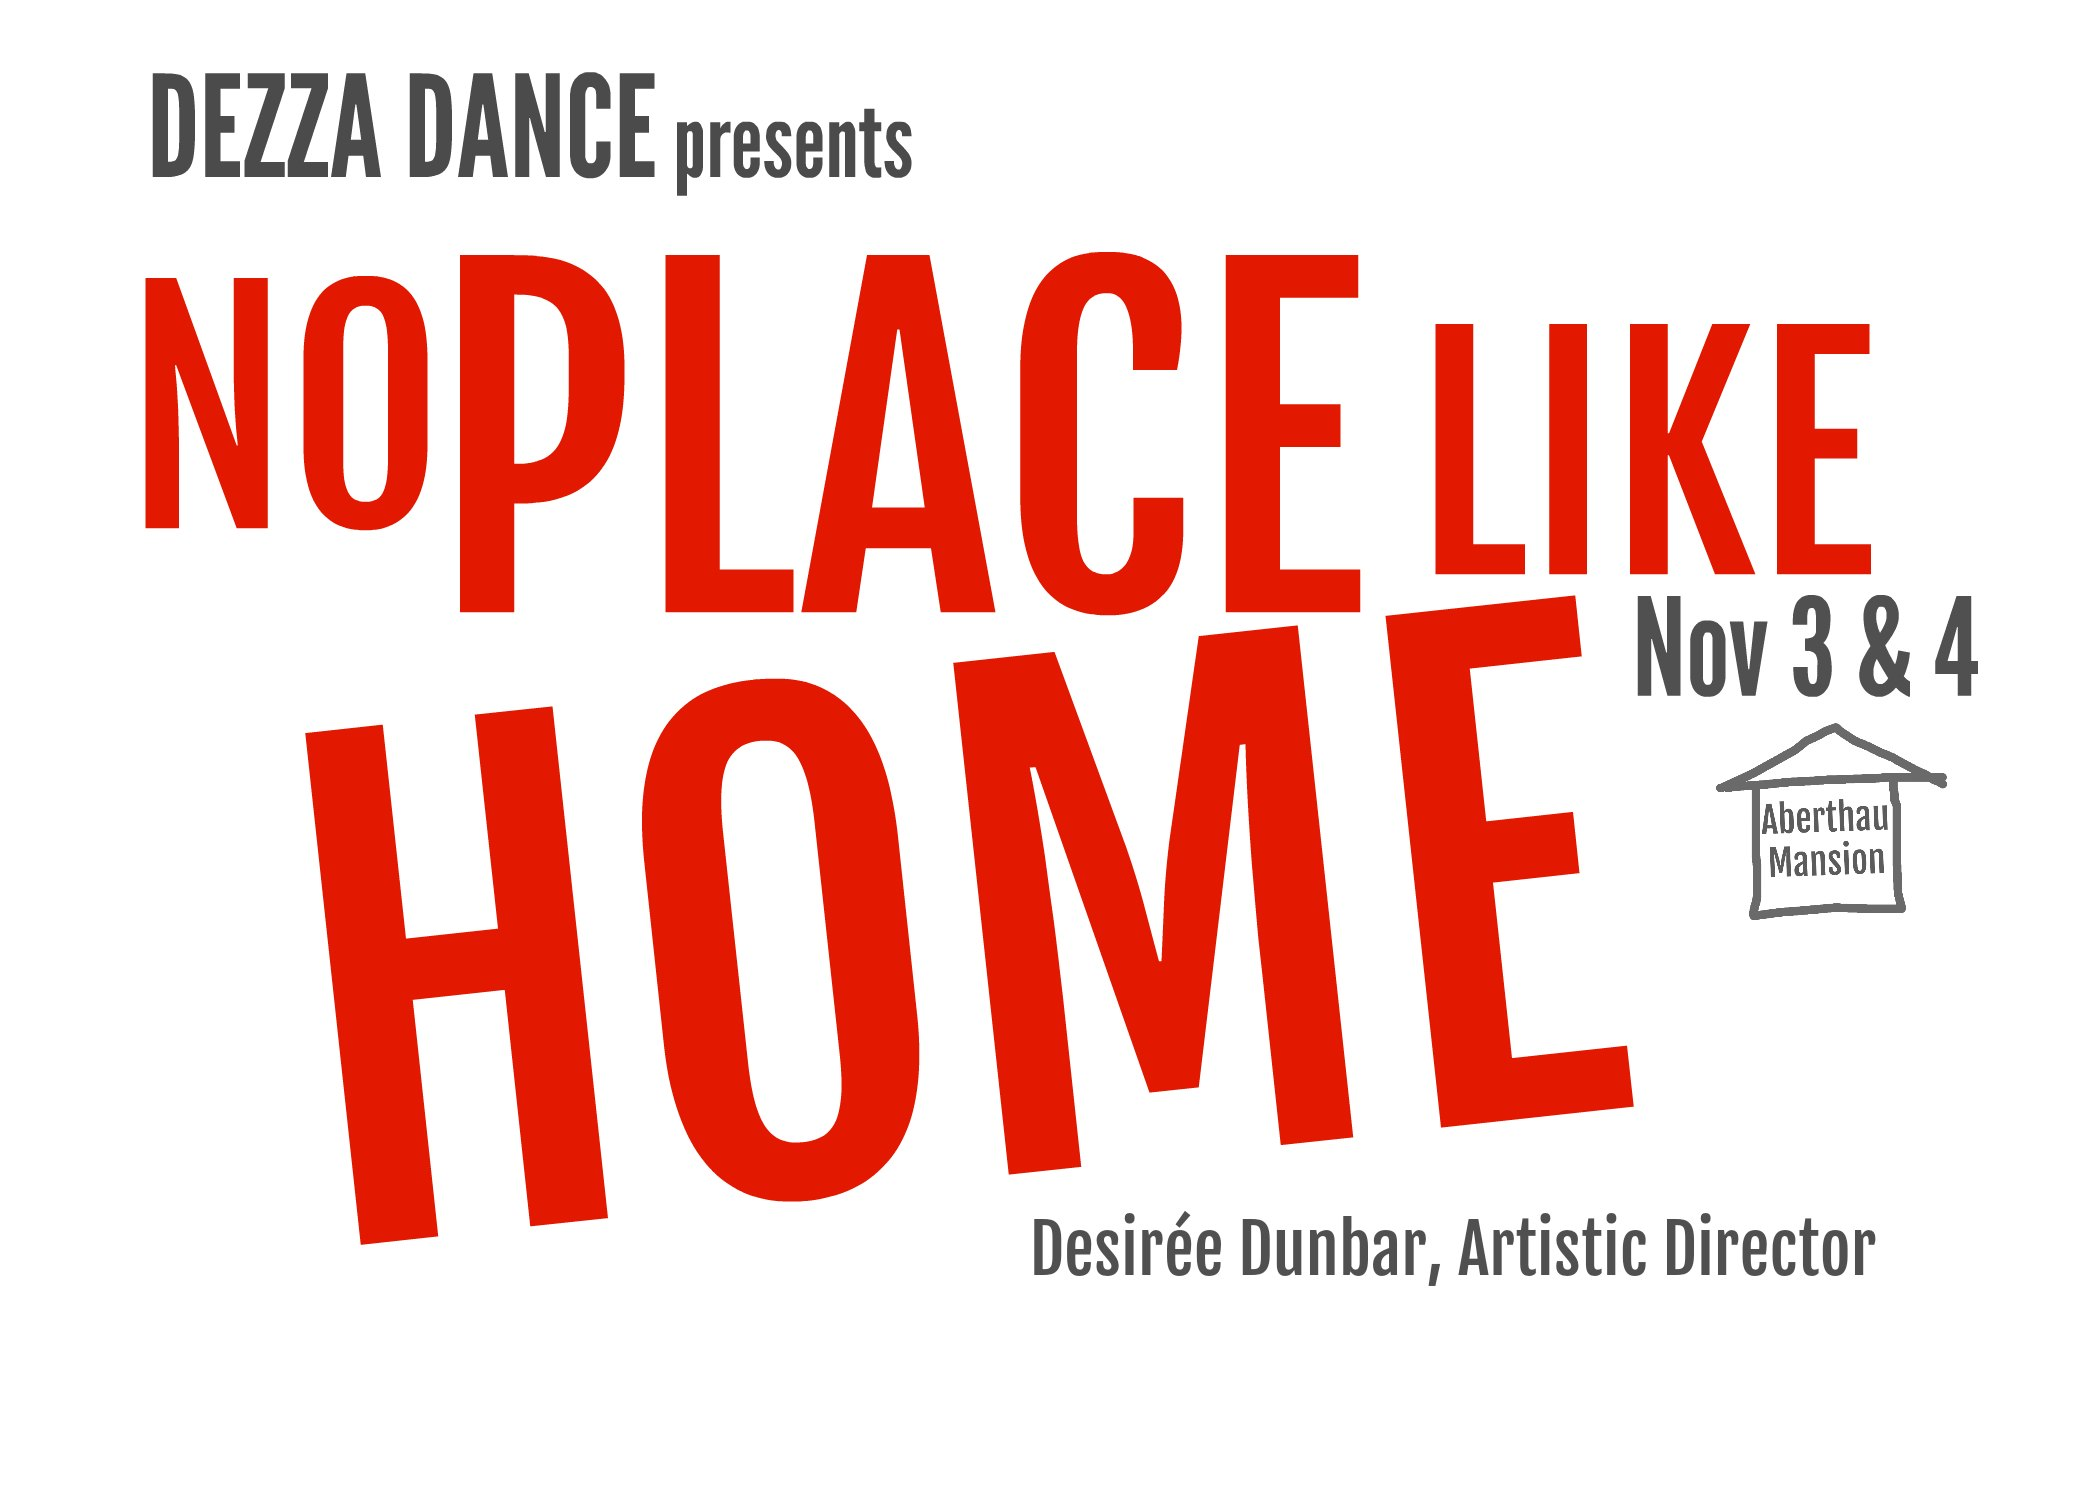 no-place-like-home-dezza-dance